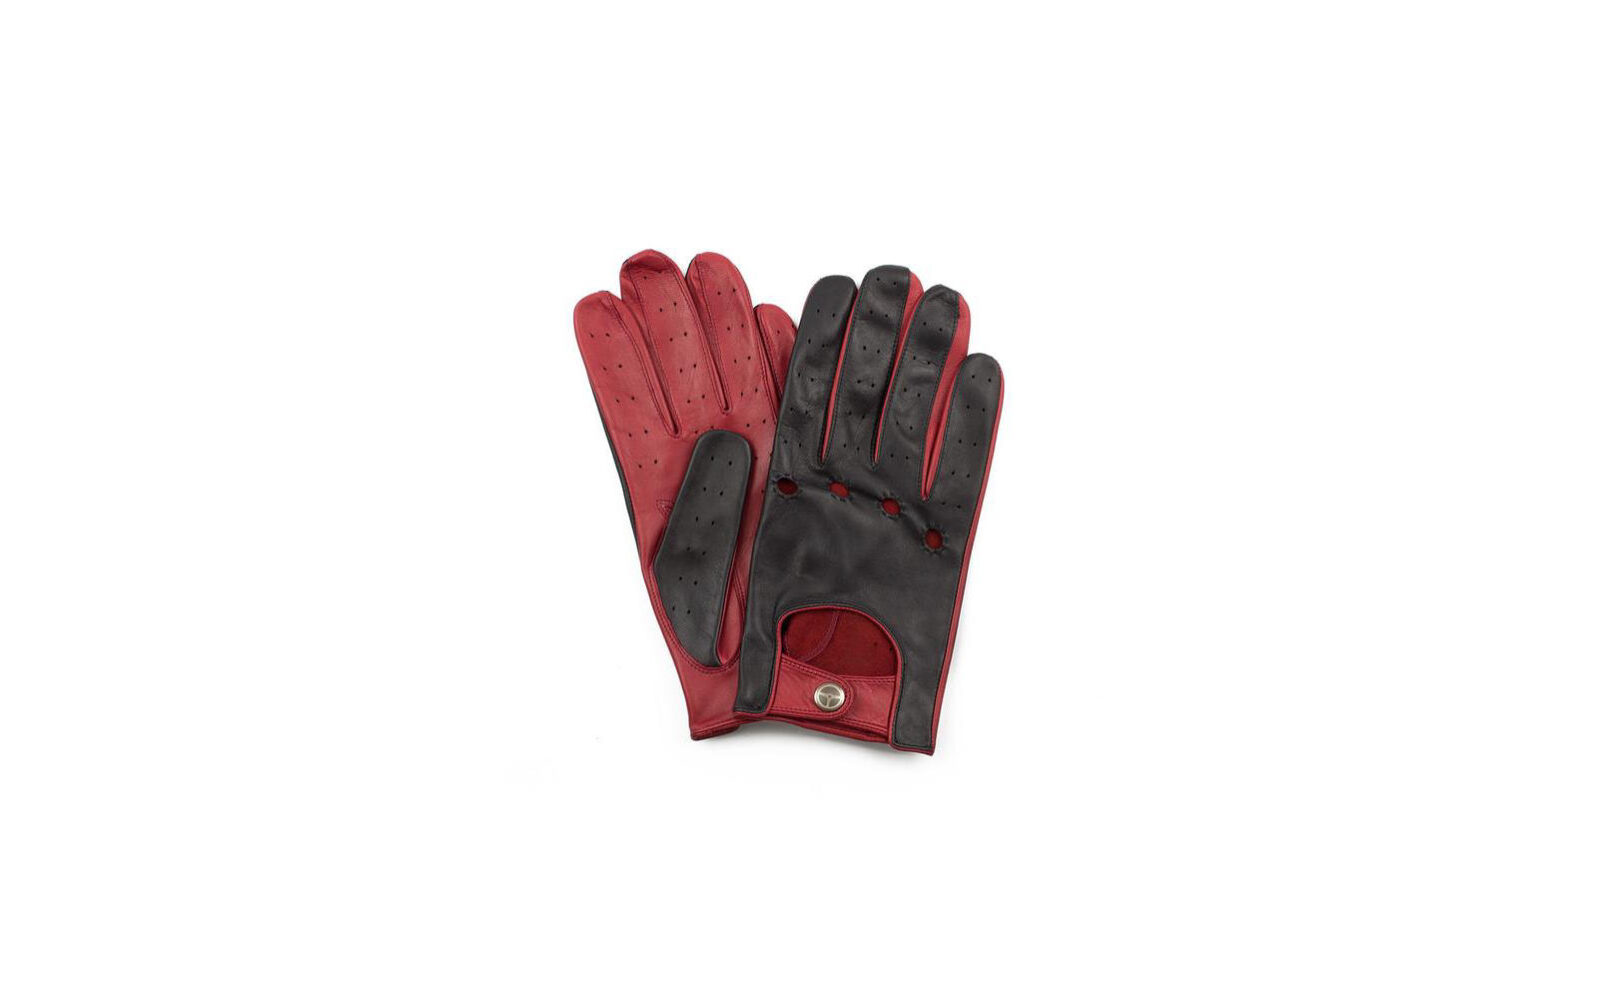 Heritage Driving Gloves 1600x999 - Outlierman Heritage Driving Gloves